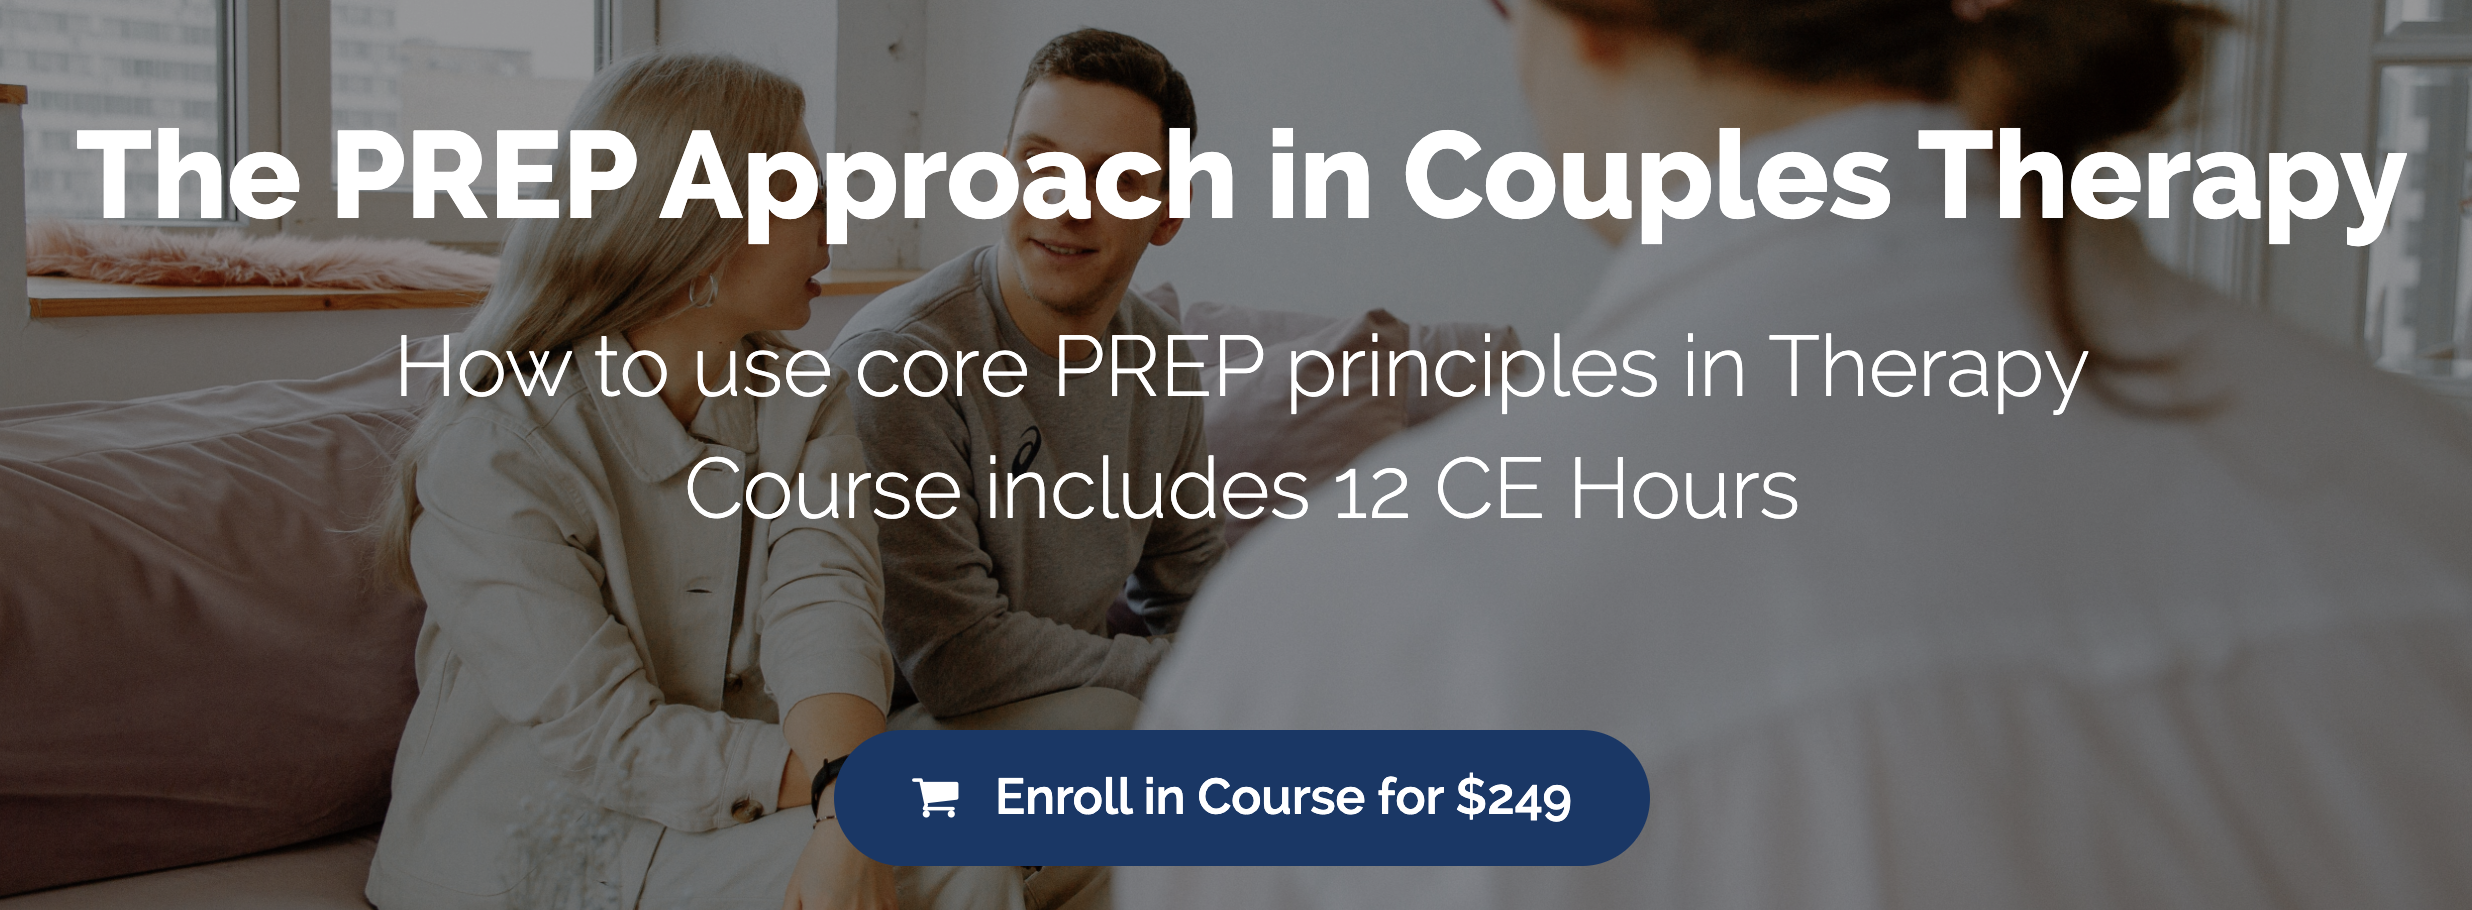 The PREP Approach in Couples Therapy